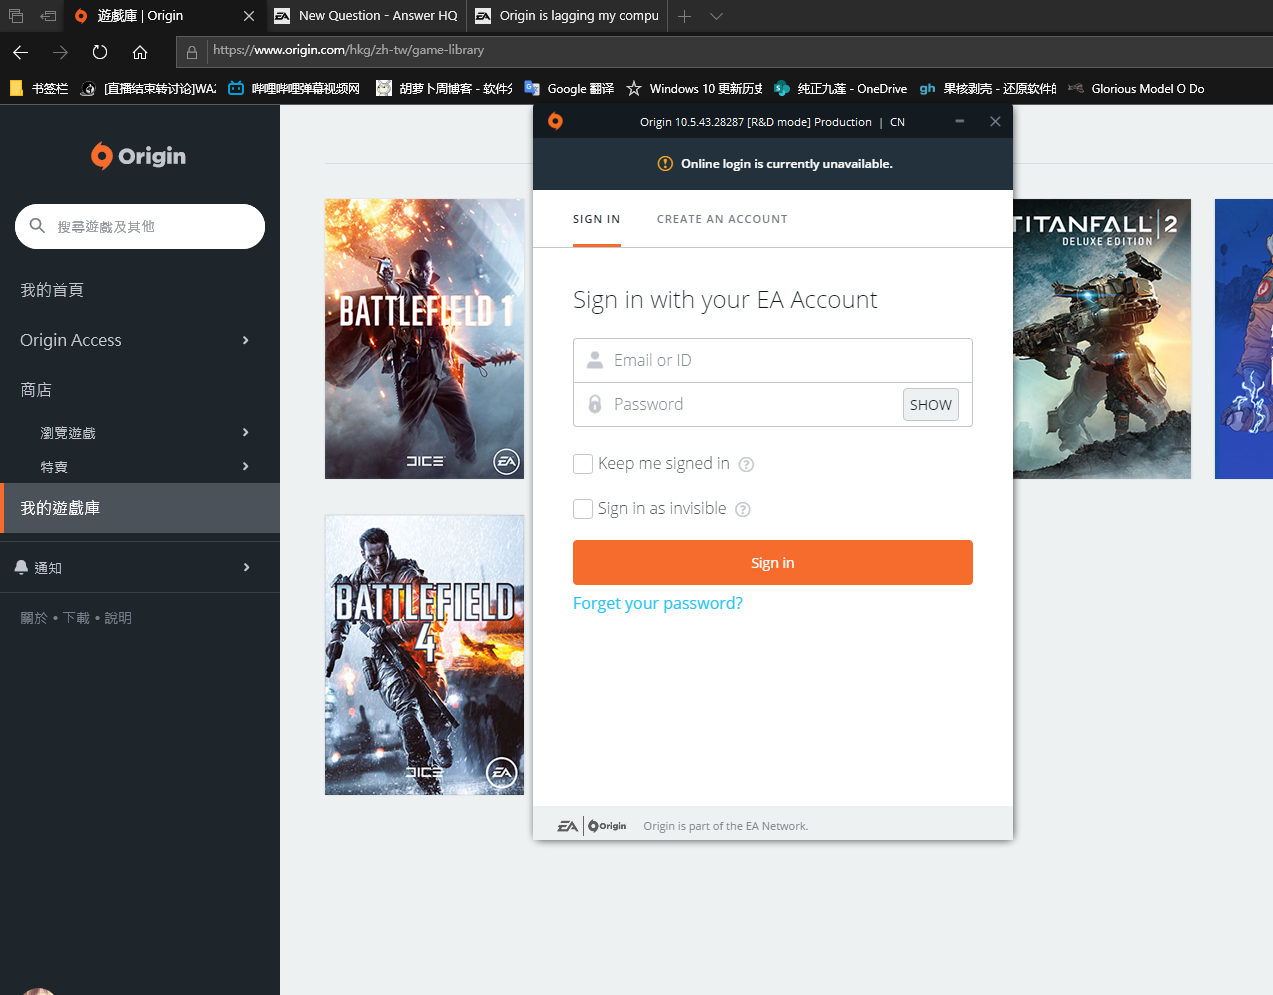 Solved: Origin online login is currently unavailable after Origin